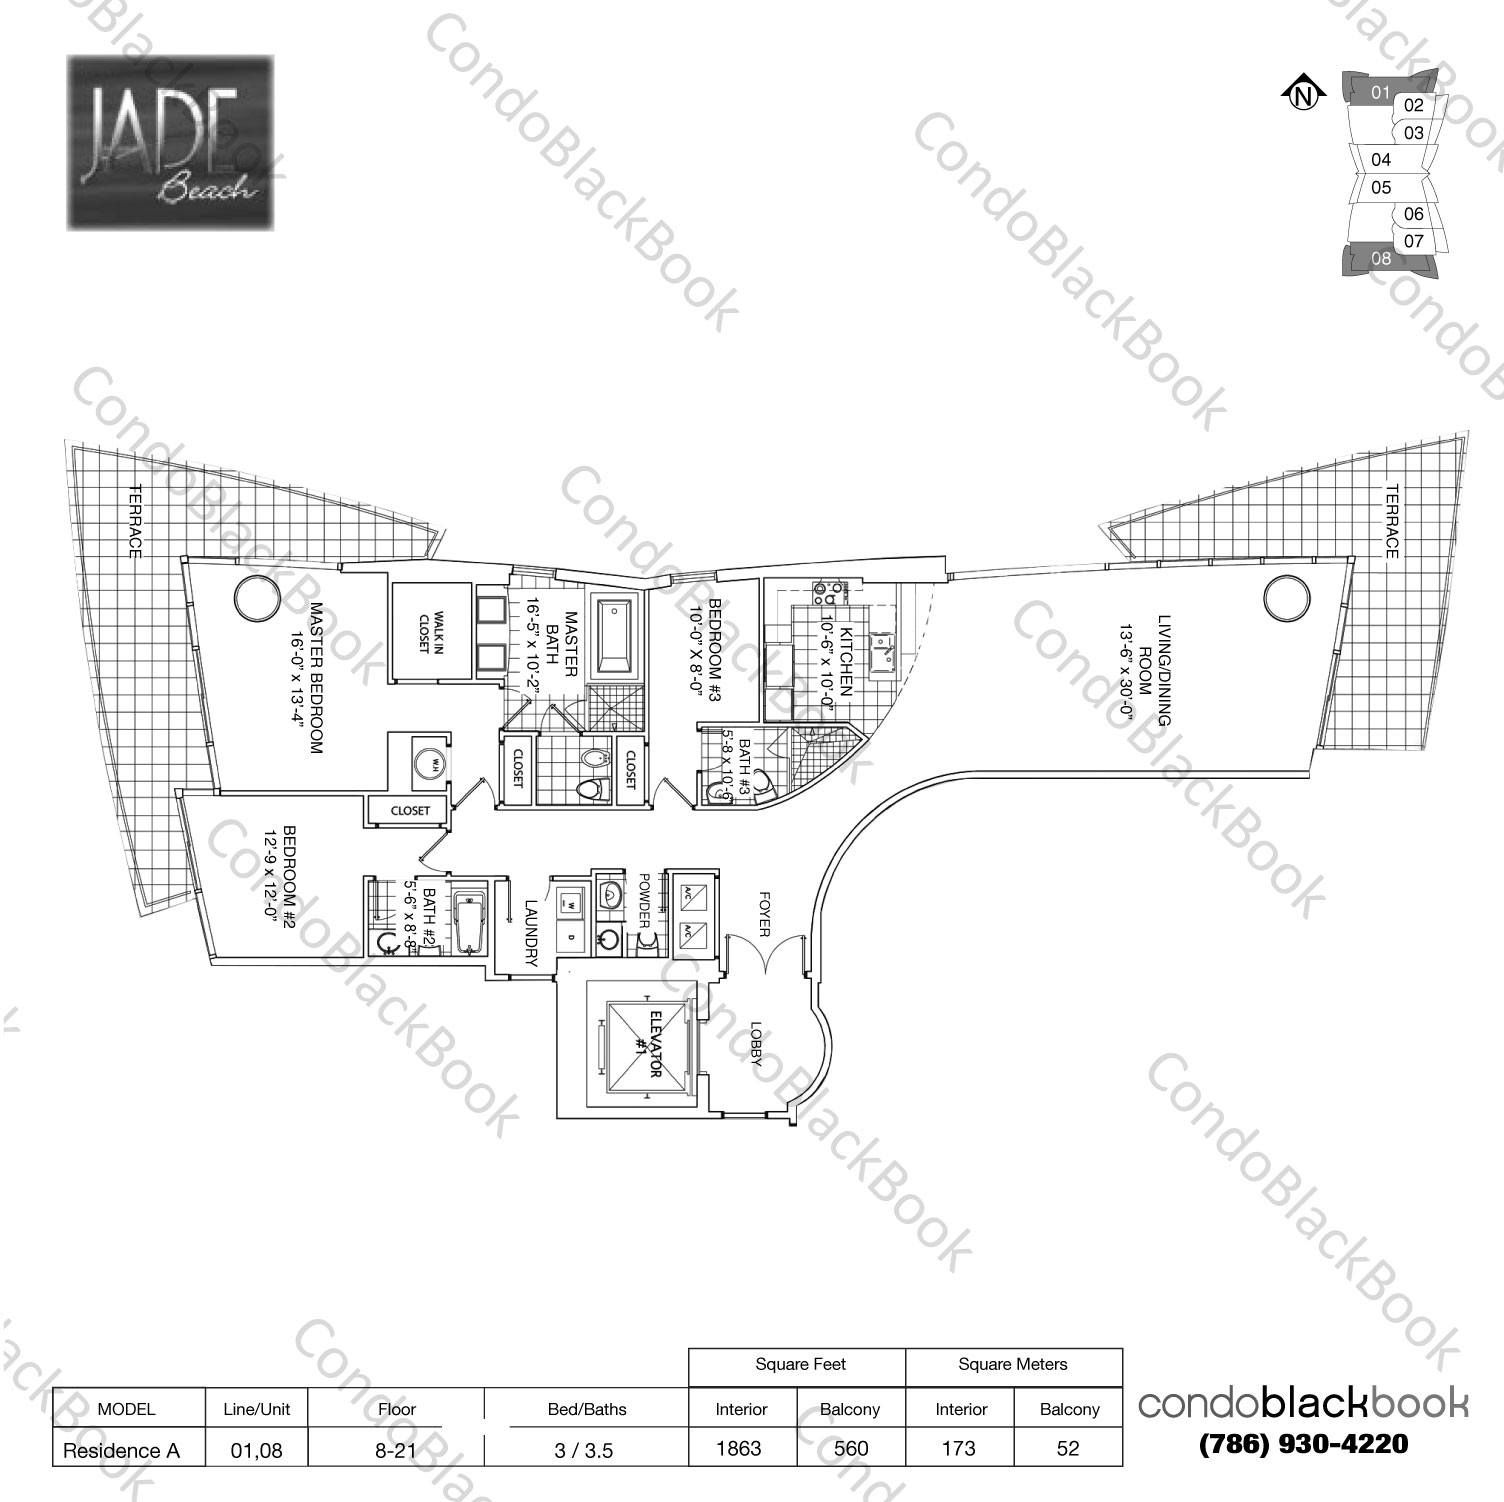 Floor plan for Jade Beach Sunny Isles Beach, model Residence A, line 01,08, 3 / 3.5 bedrooms, 2035 sq ft